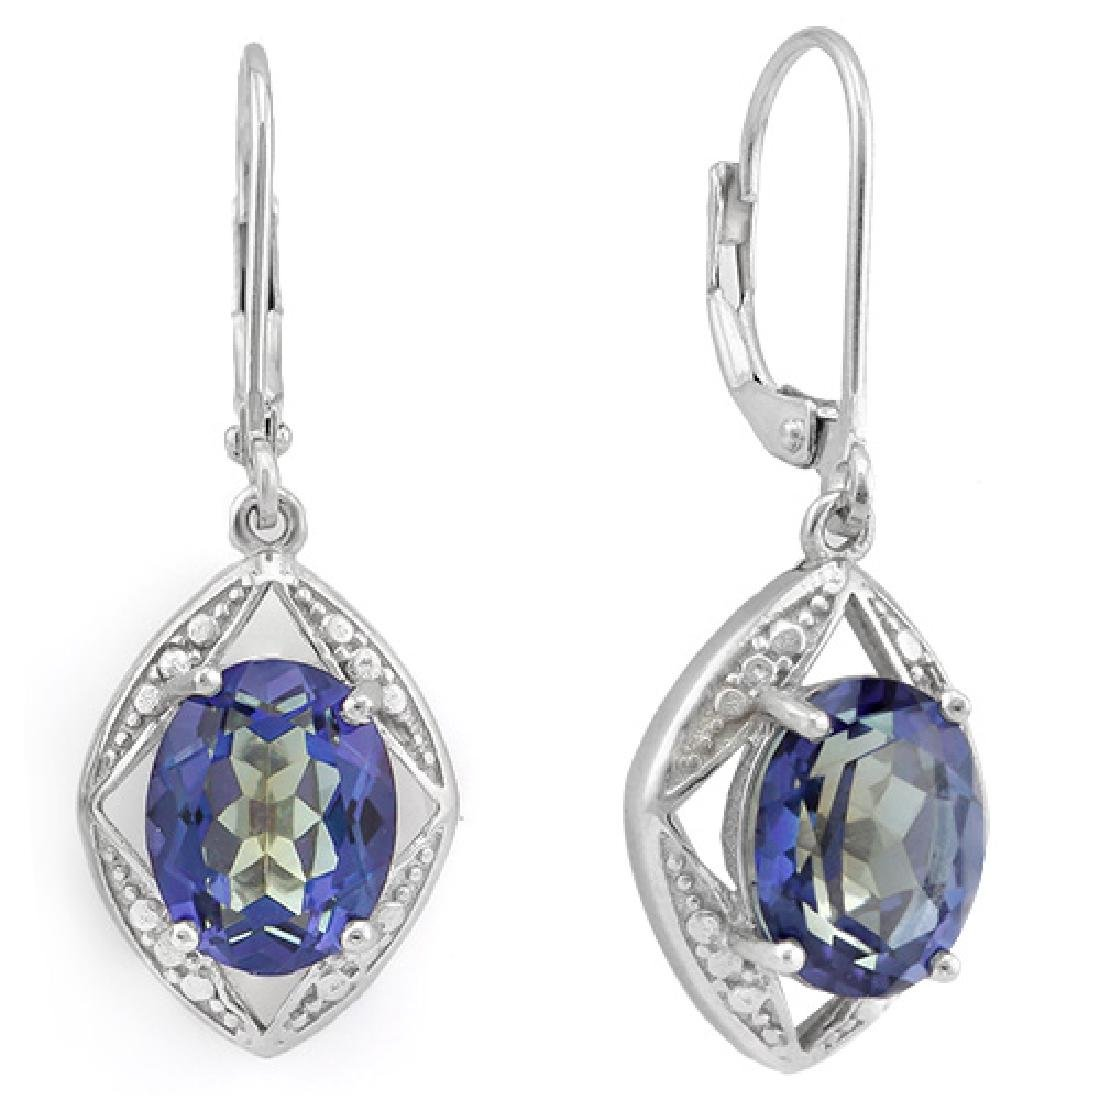 Blue Violet Mystic Topaz Dangle Earrings in Sterling - 2